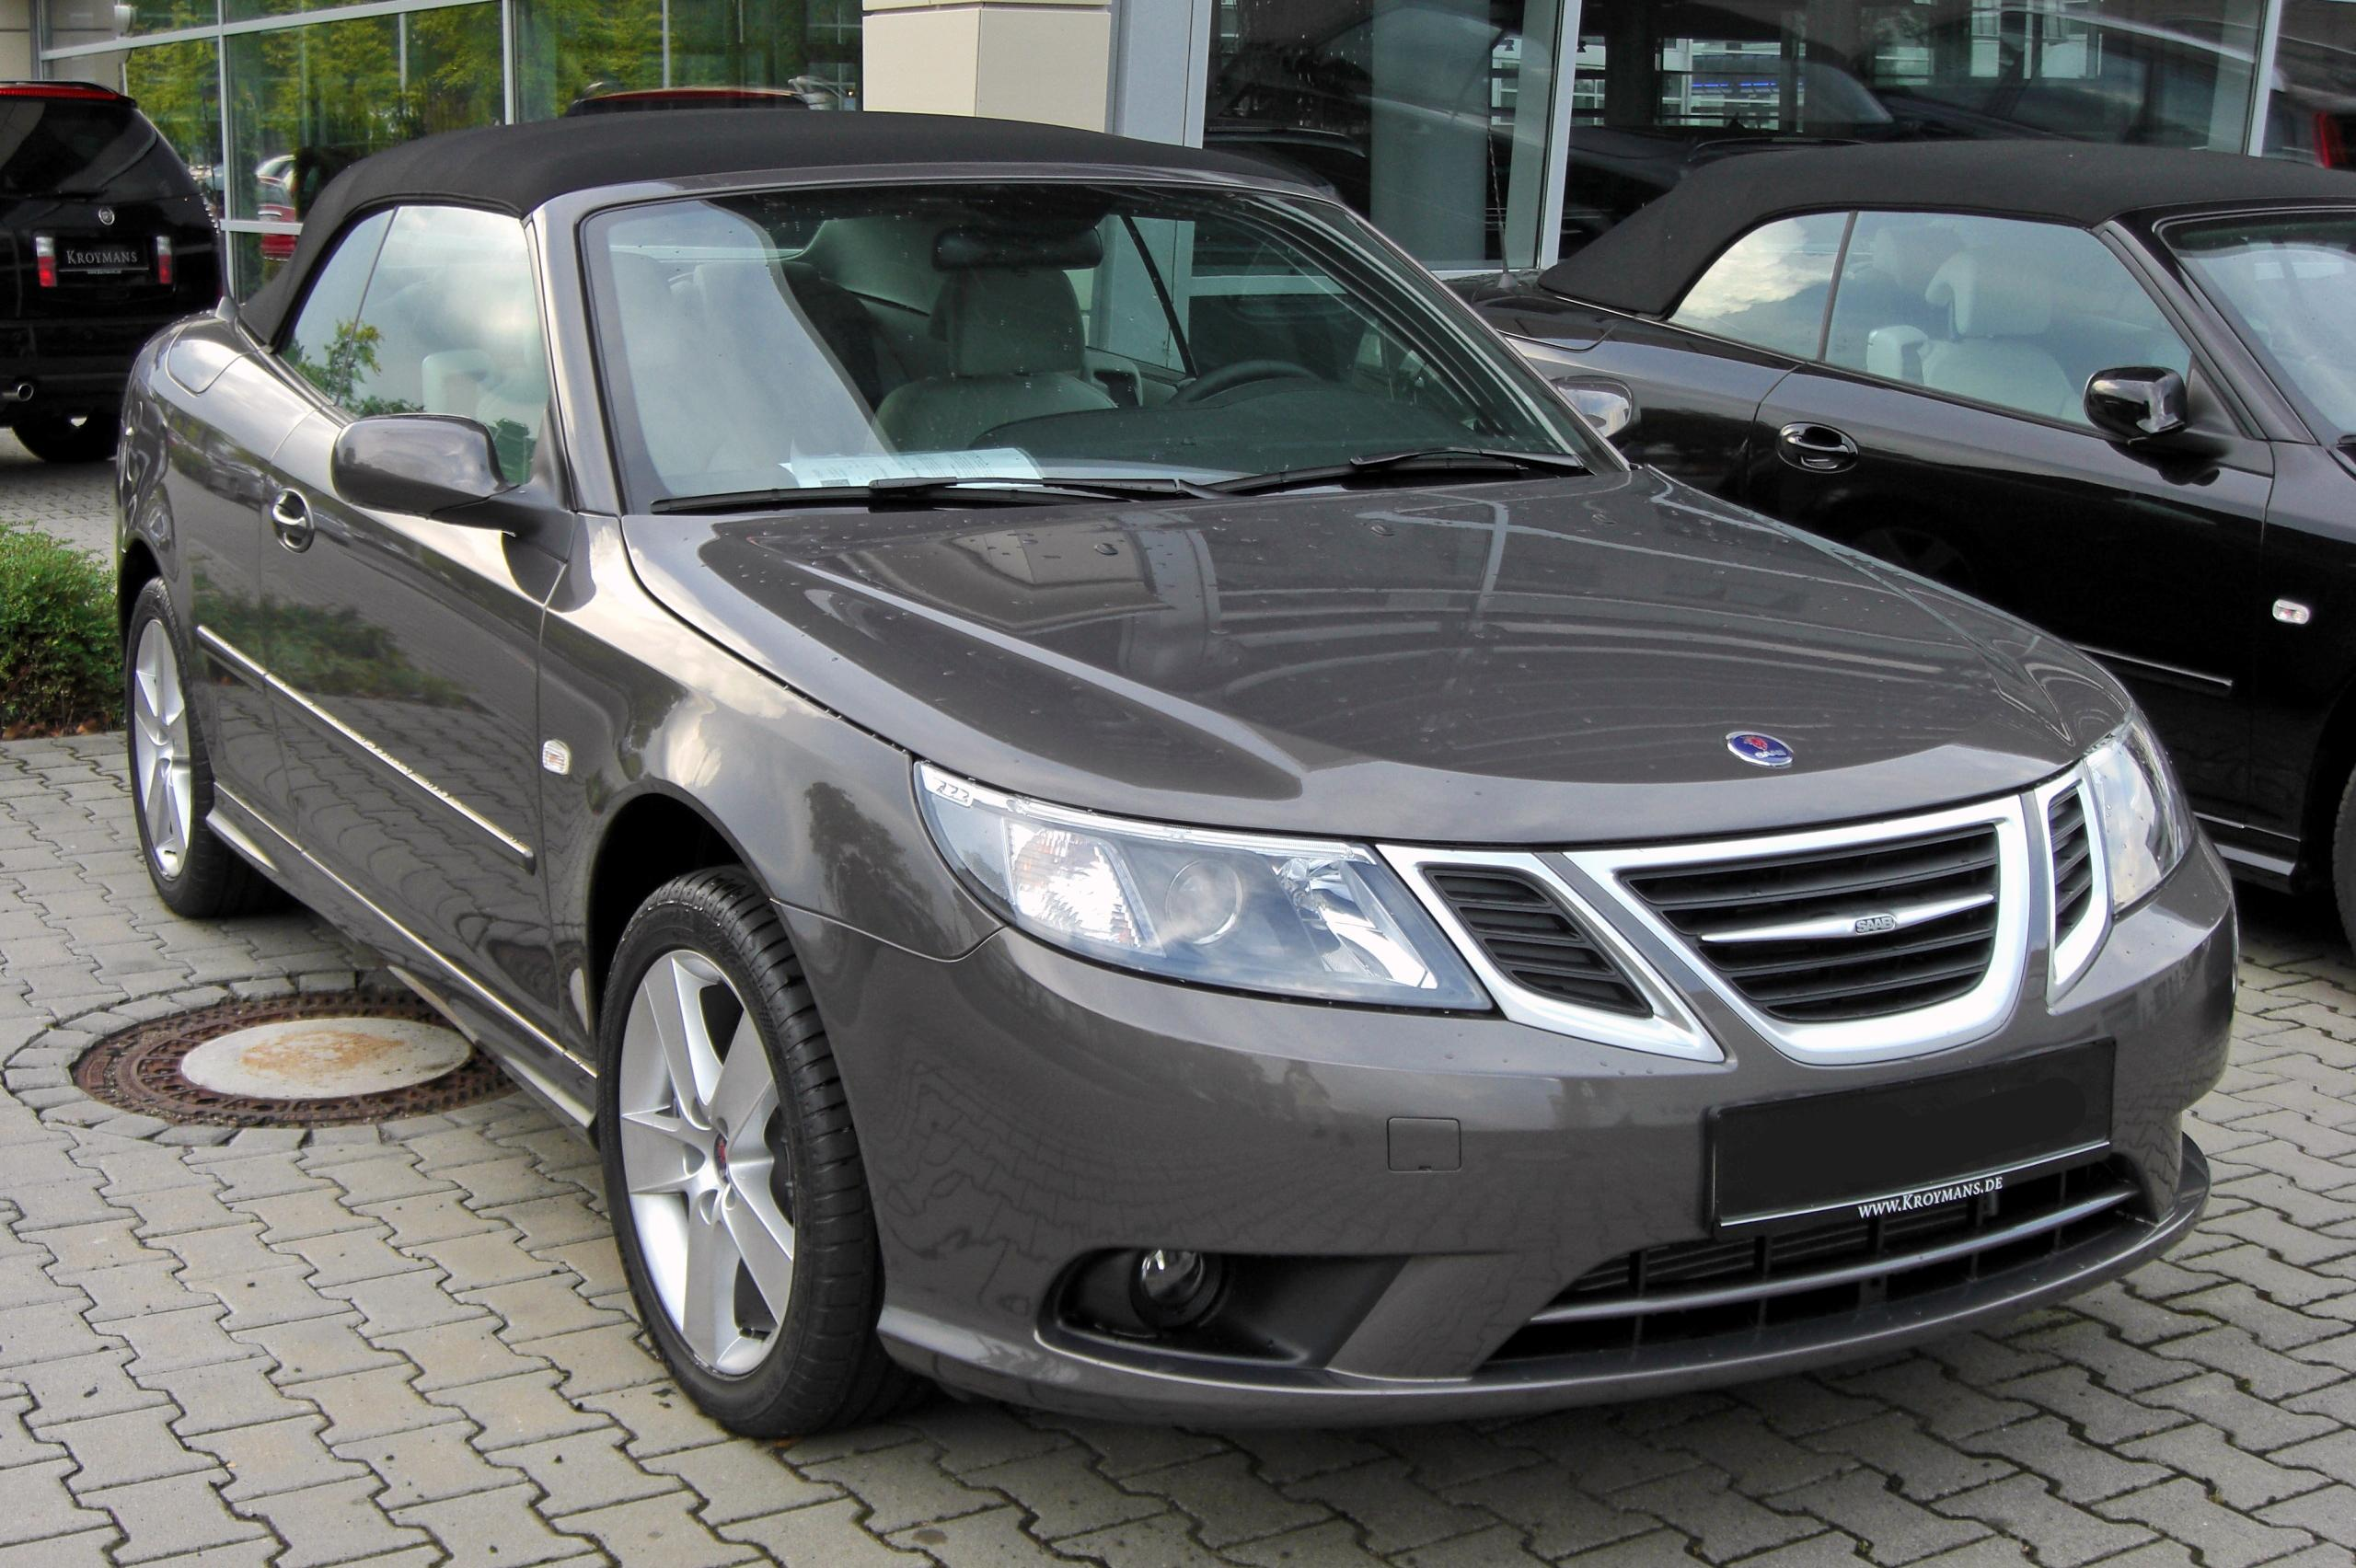 file saab 9 3 cabrio 1 9 tid facelift 20090706 front jpg wikimedia commons. Black Bedroom Furniture Sets. Home Design Ideas